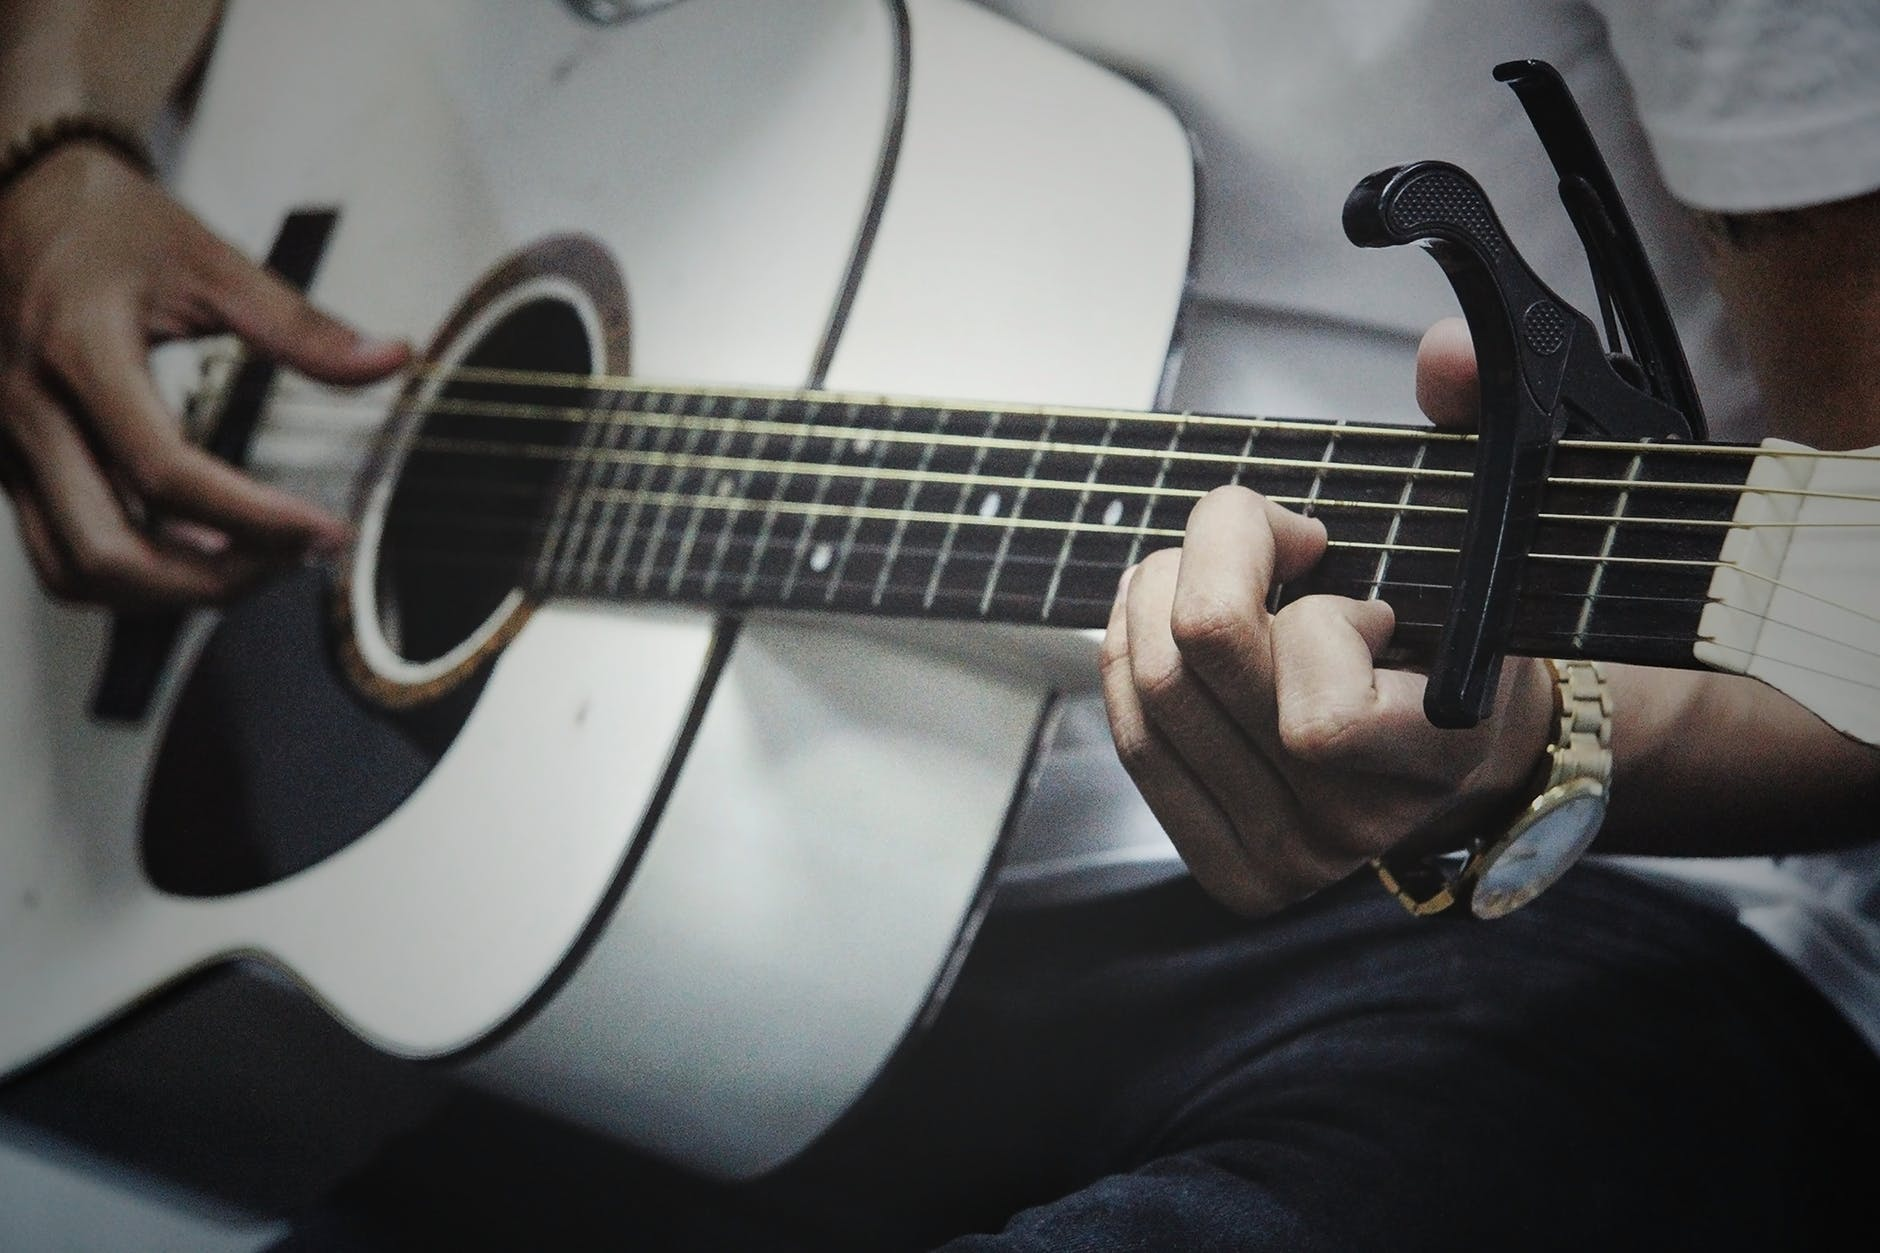 man playing a guitar using a capo